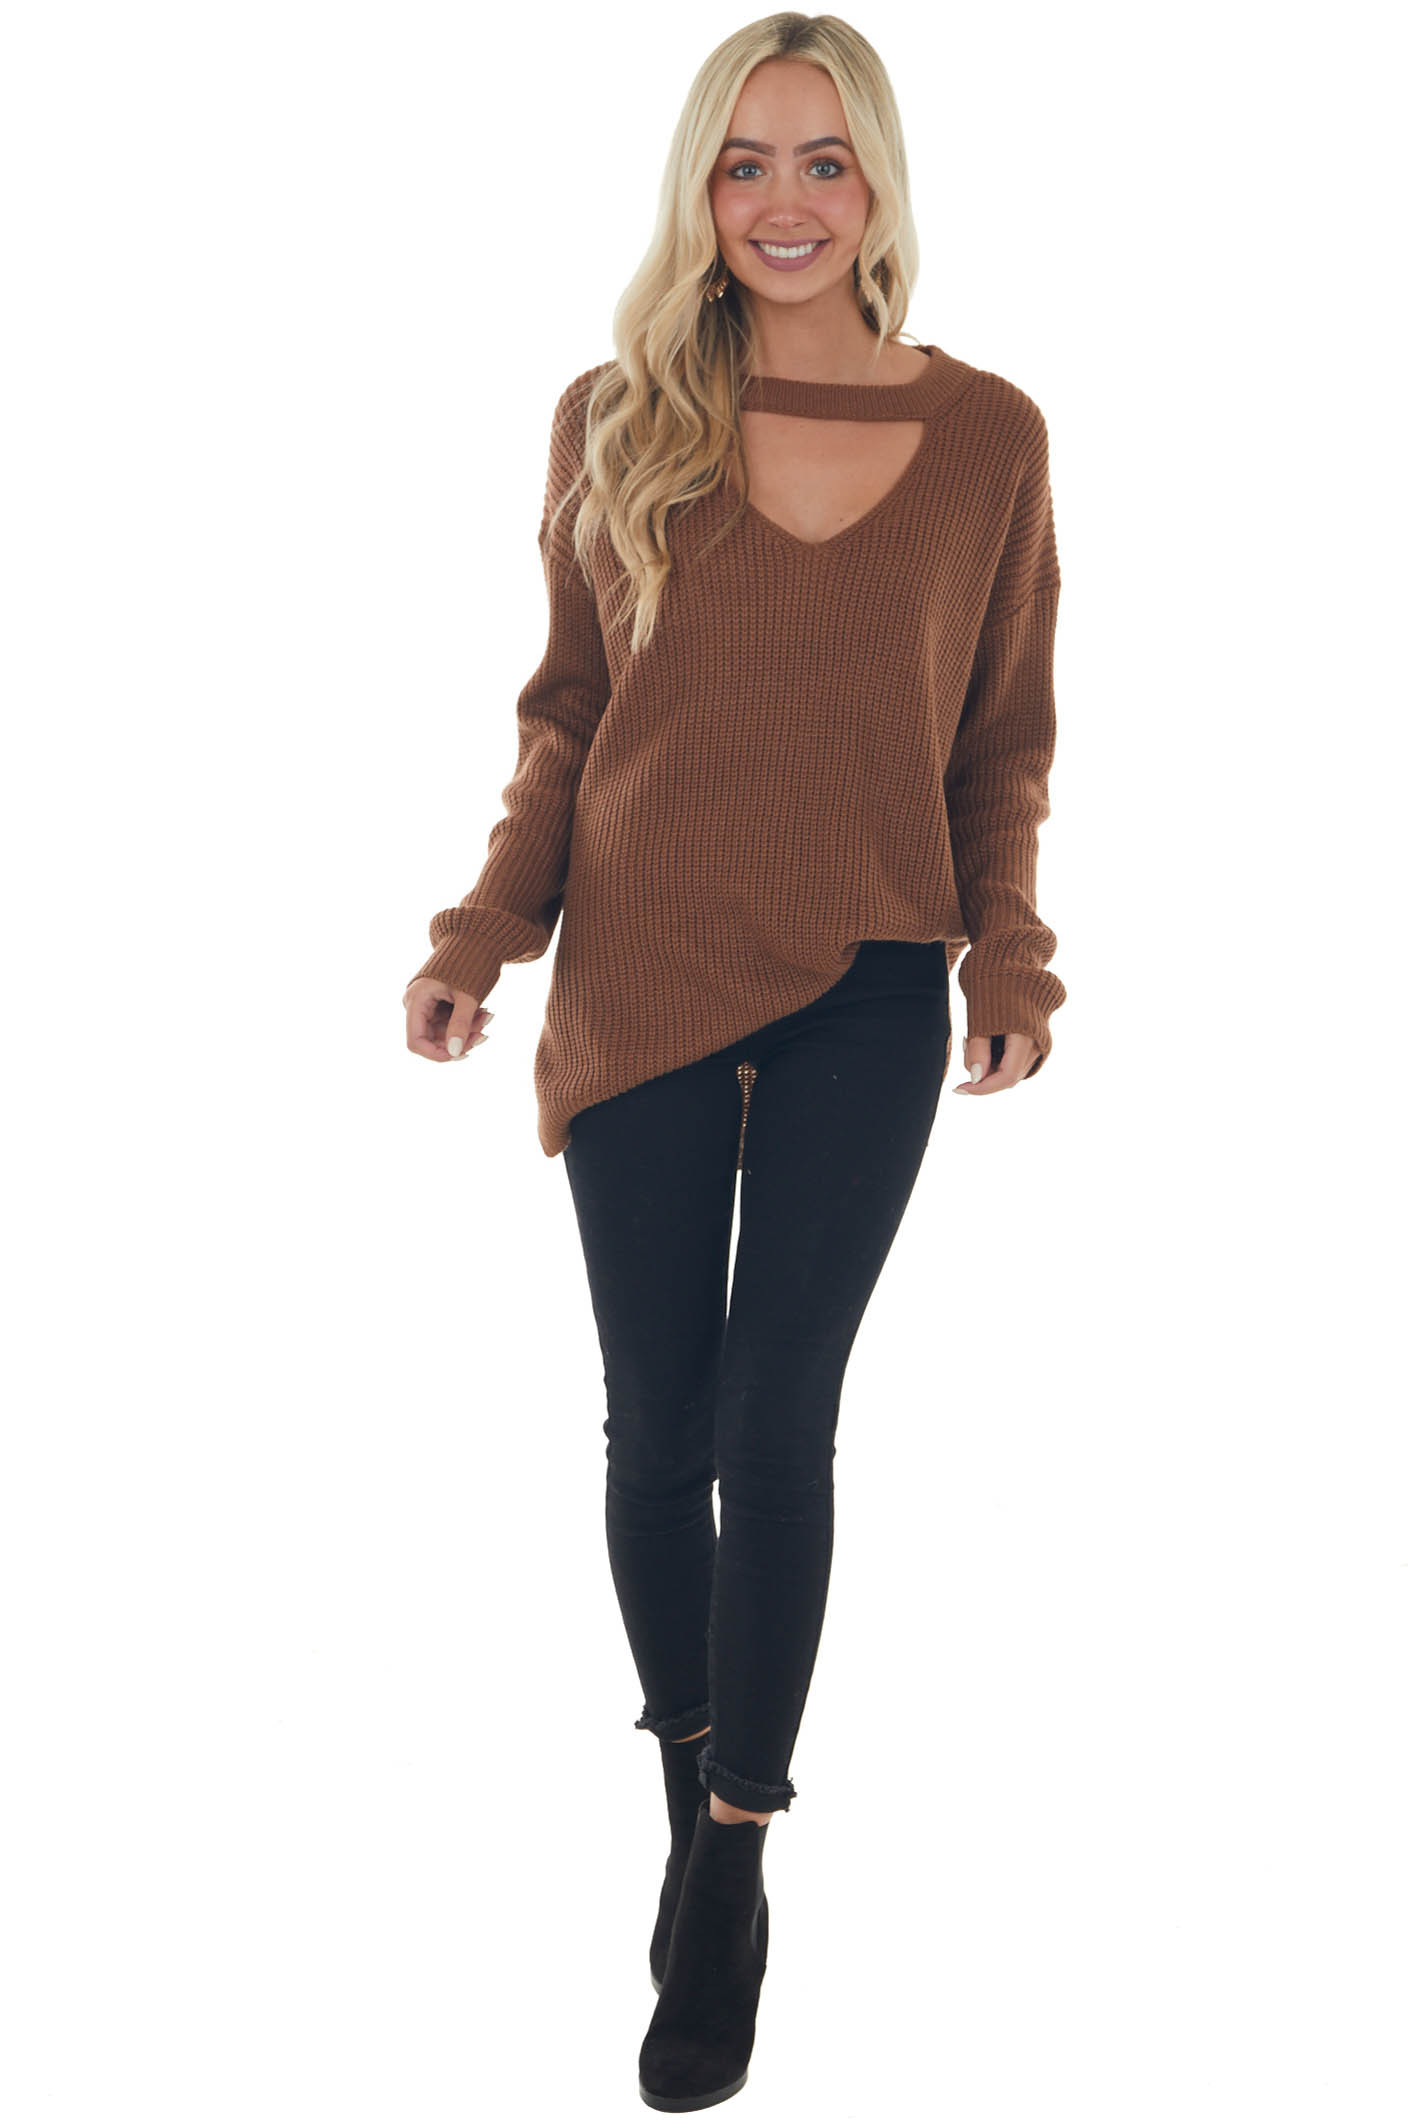 Sepia Chest Cut Out Oversized Sweater